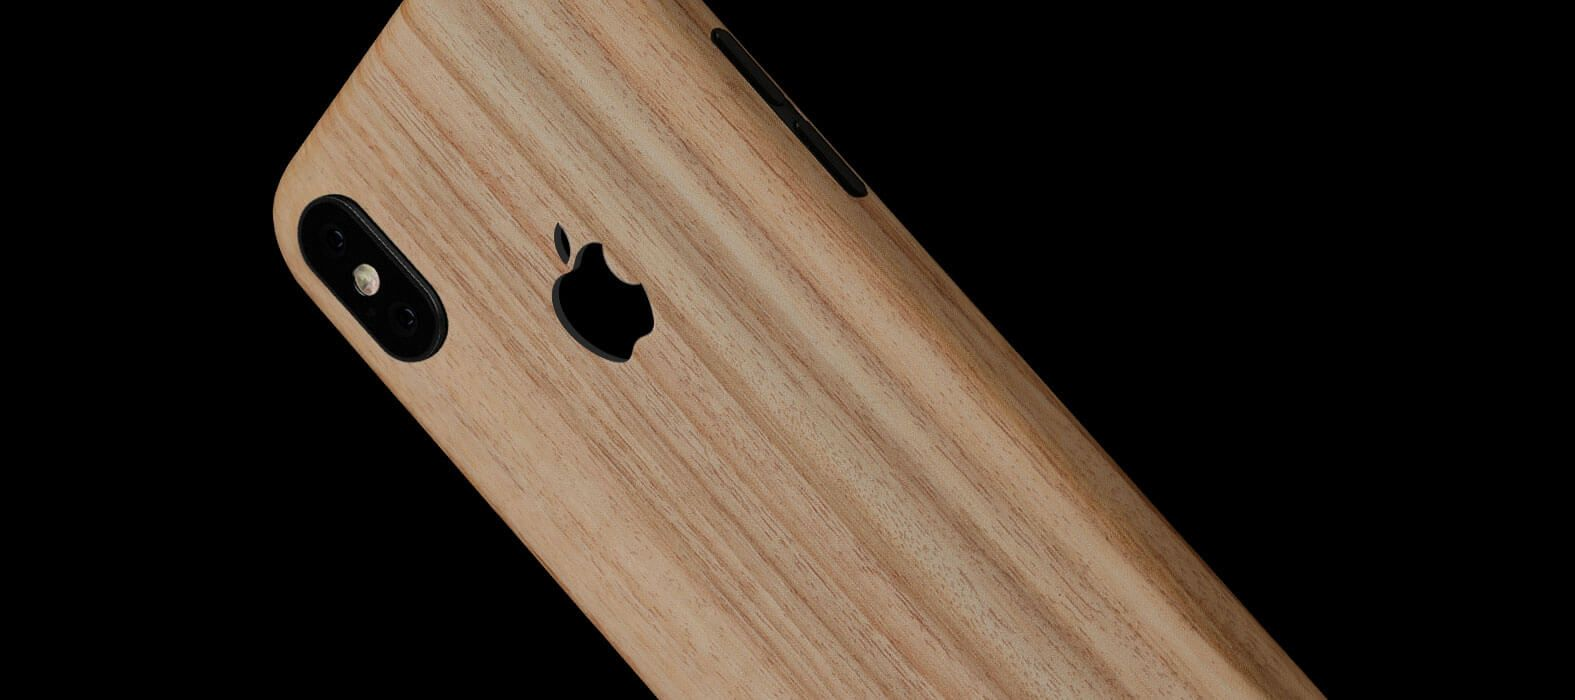 iPhone X Skins, Wraps & decals, Bamboo Wood